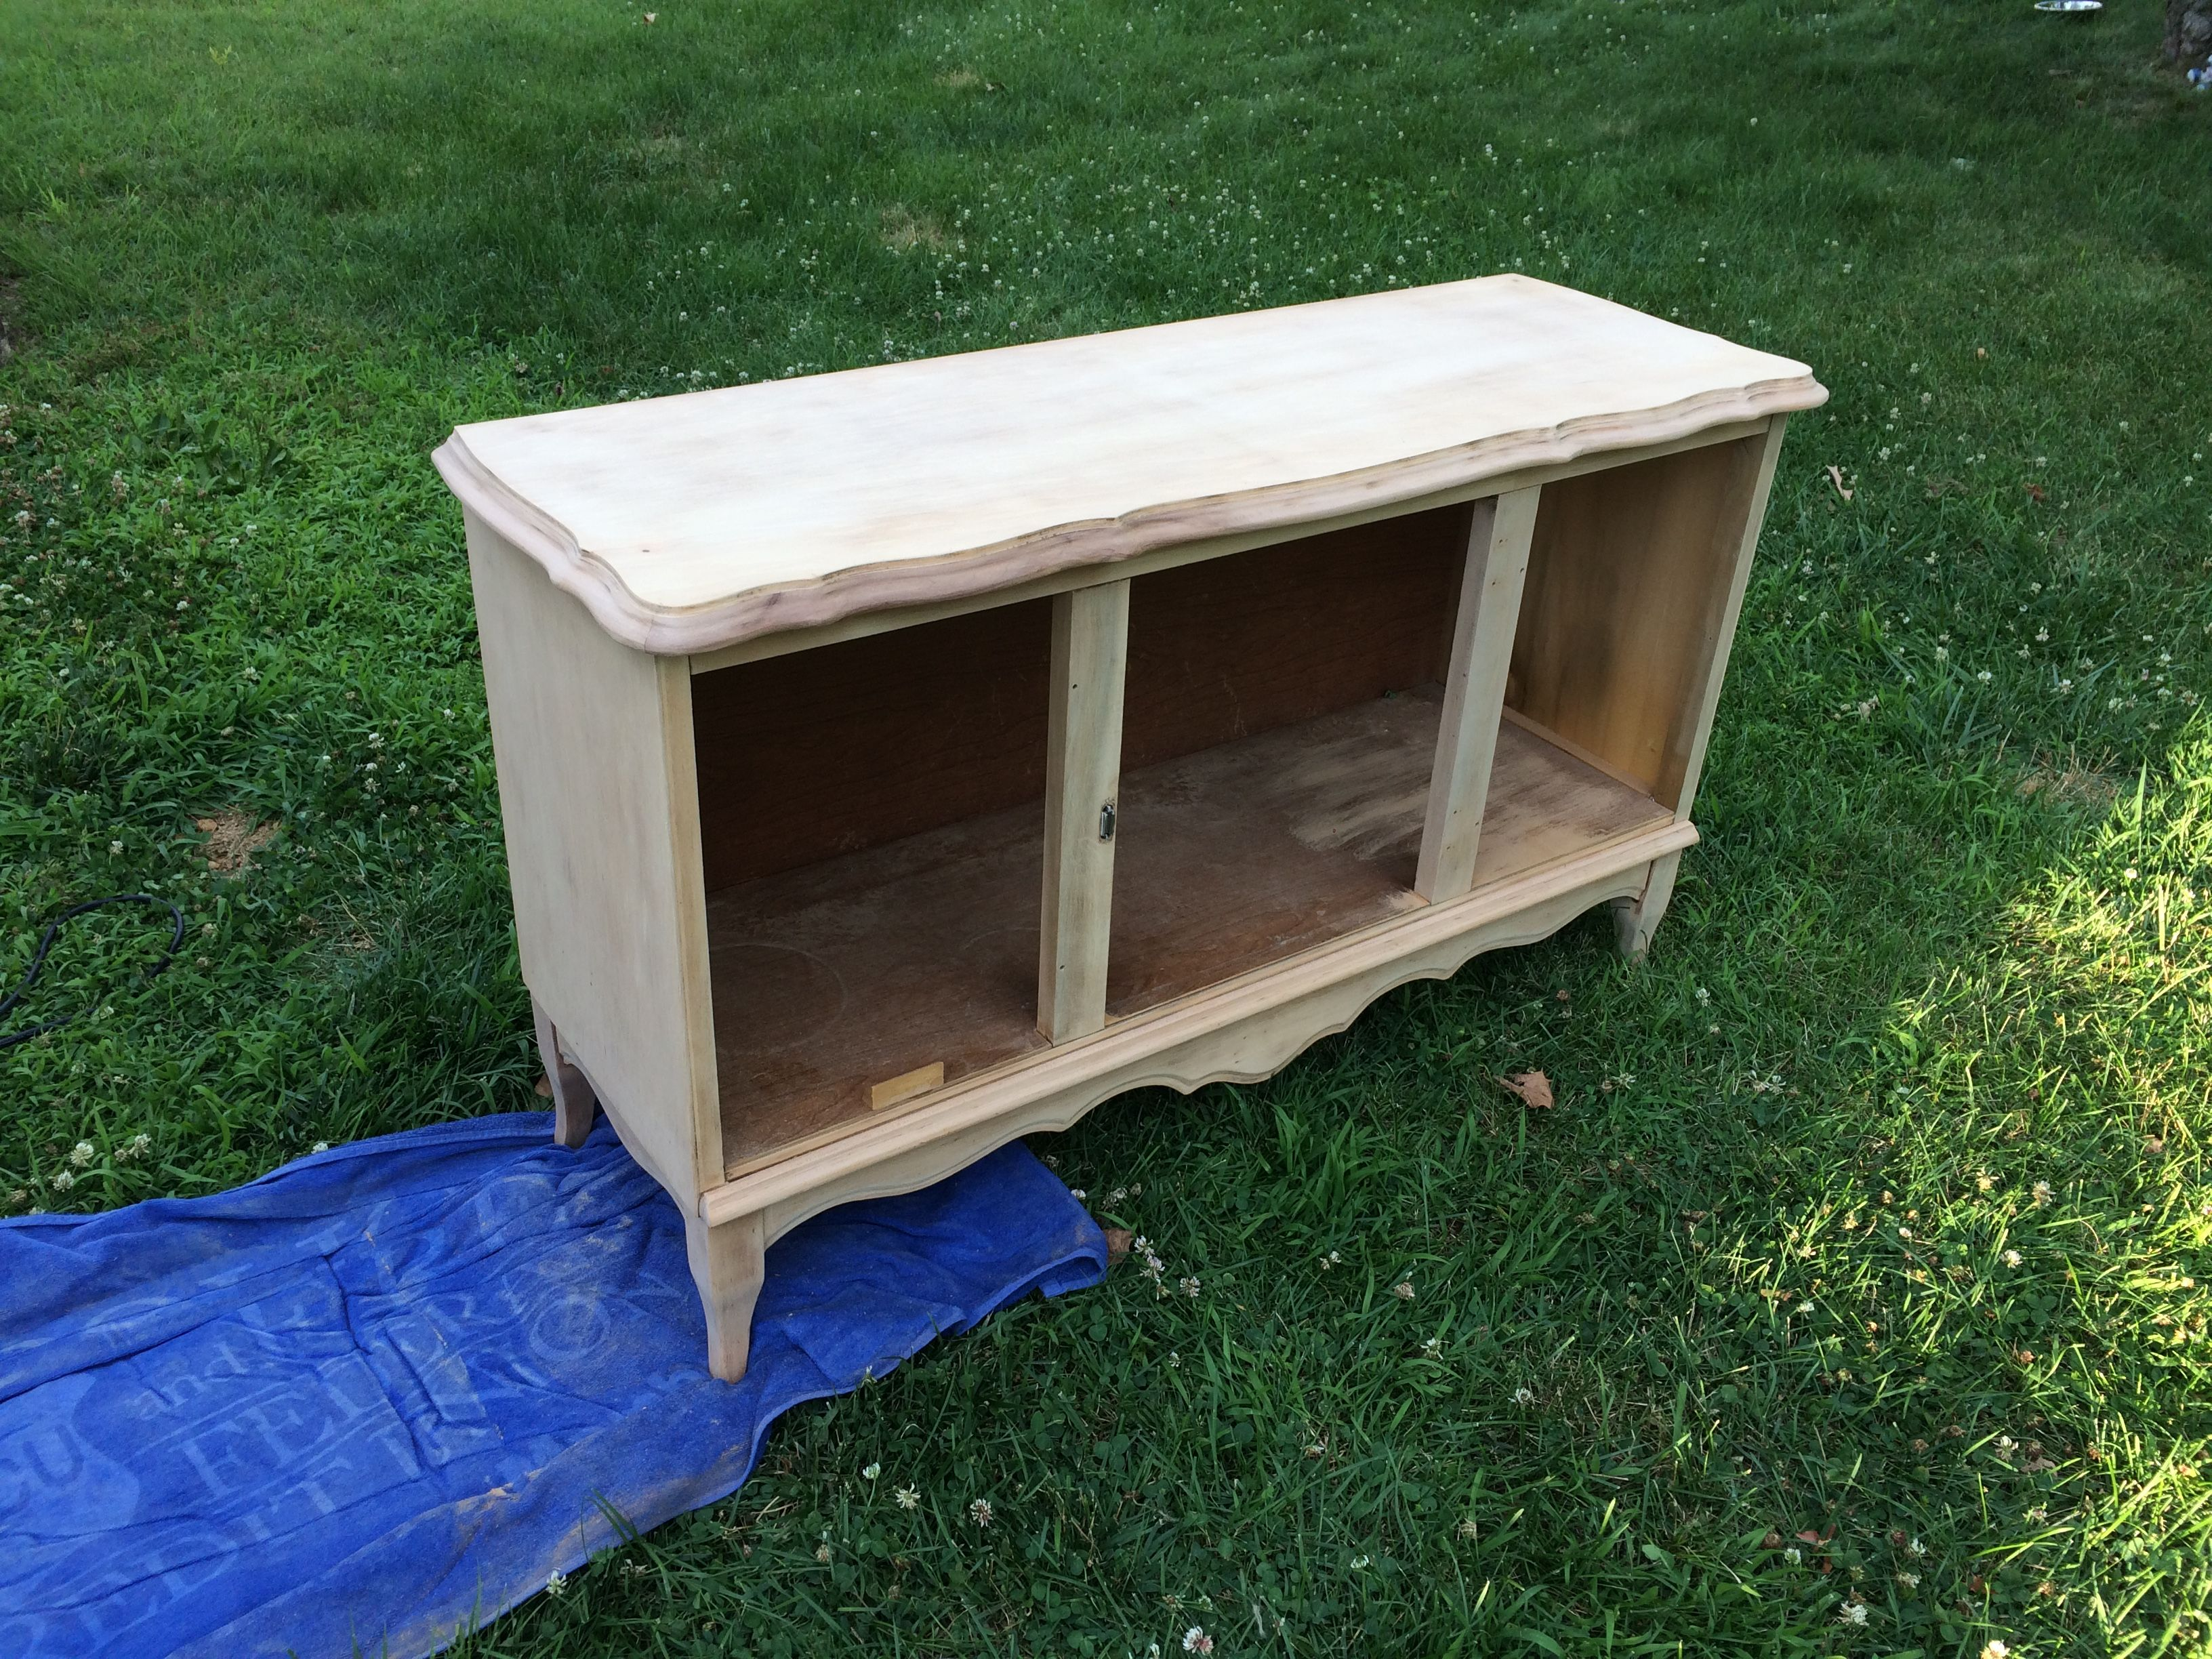 Cat Litter Box Furniture After Stripping It By Sanding It With A